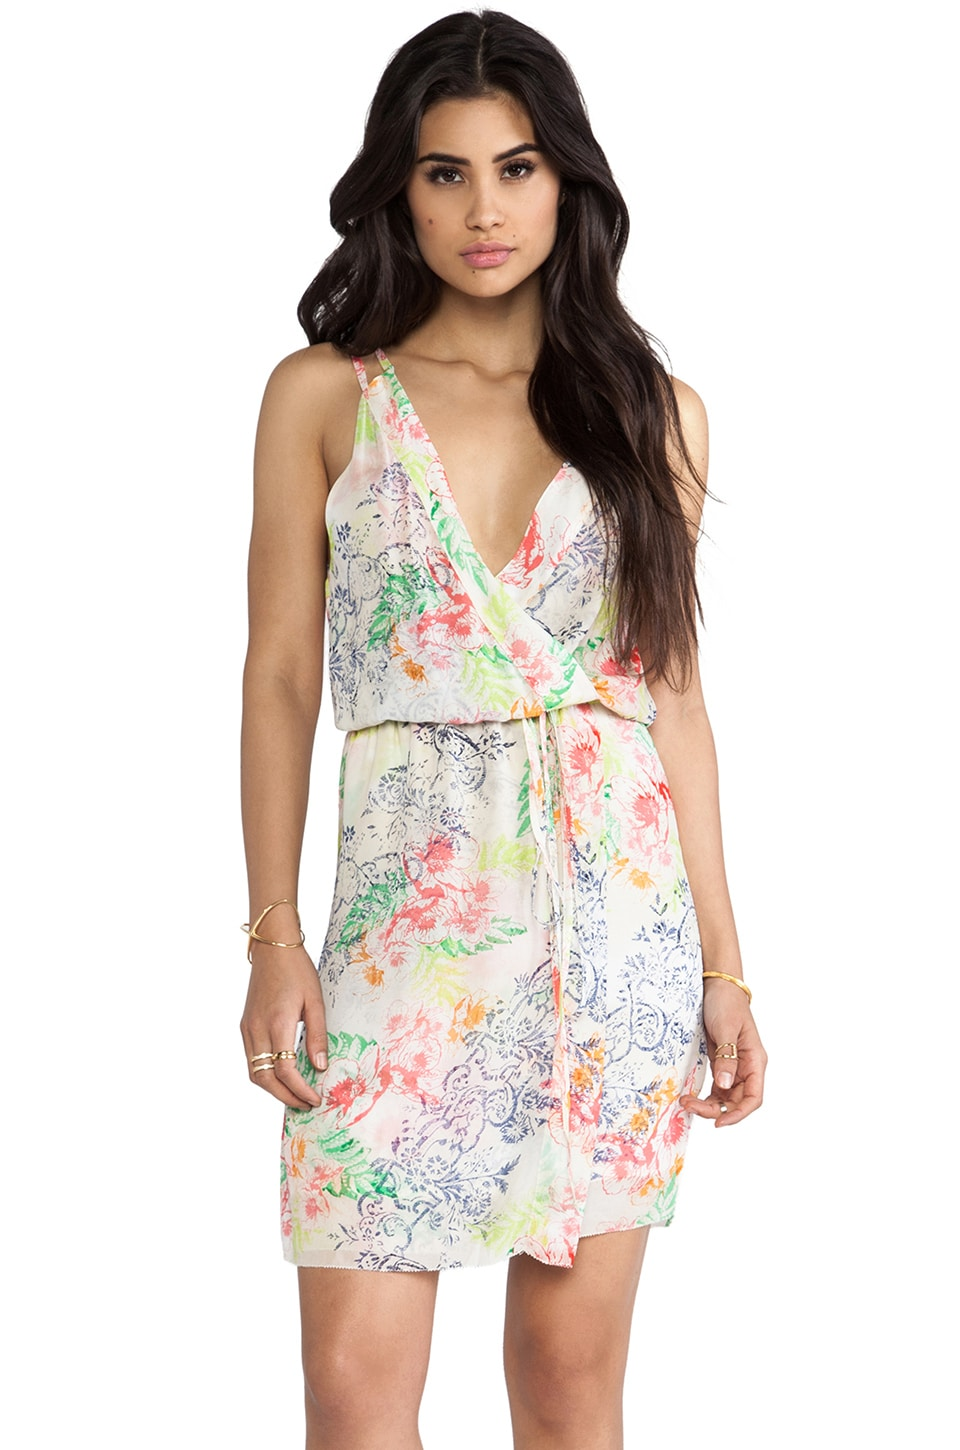 LA Made Hawaiian Floral Cross Over Dress in Hawaiian Floral